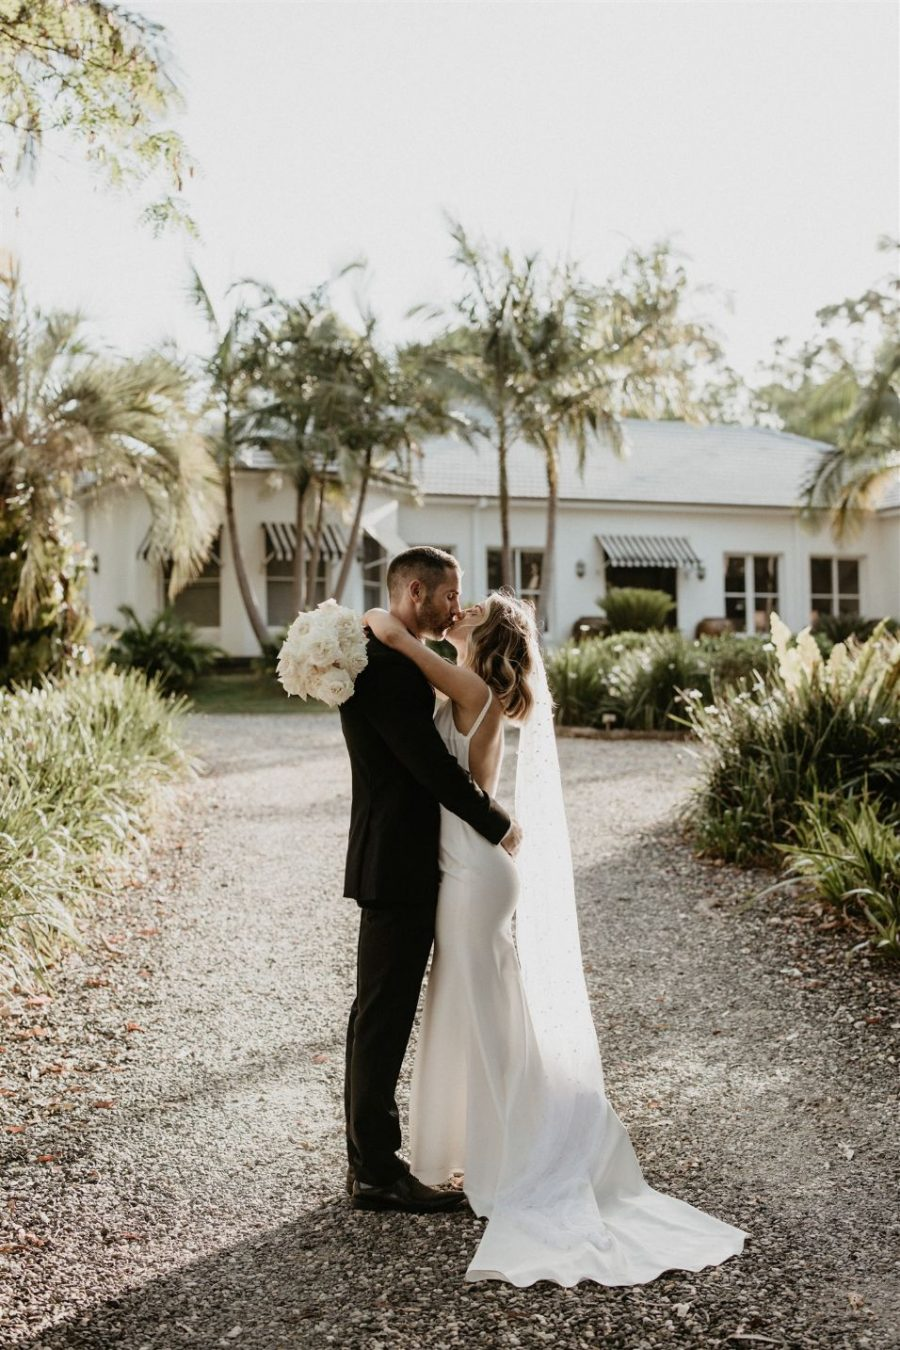 Bride and groom kiss with flower bouquet in hand.